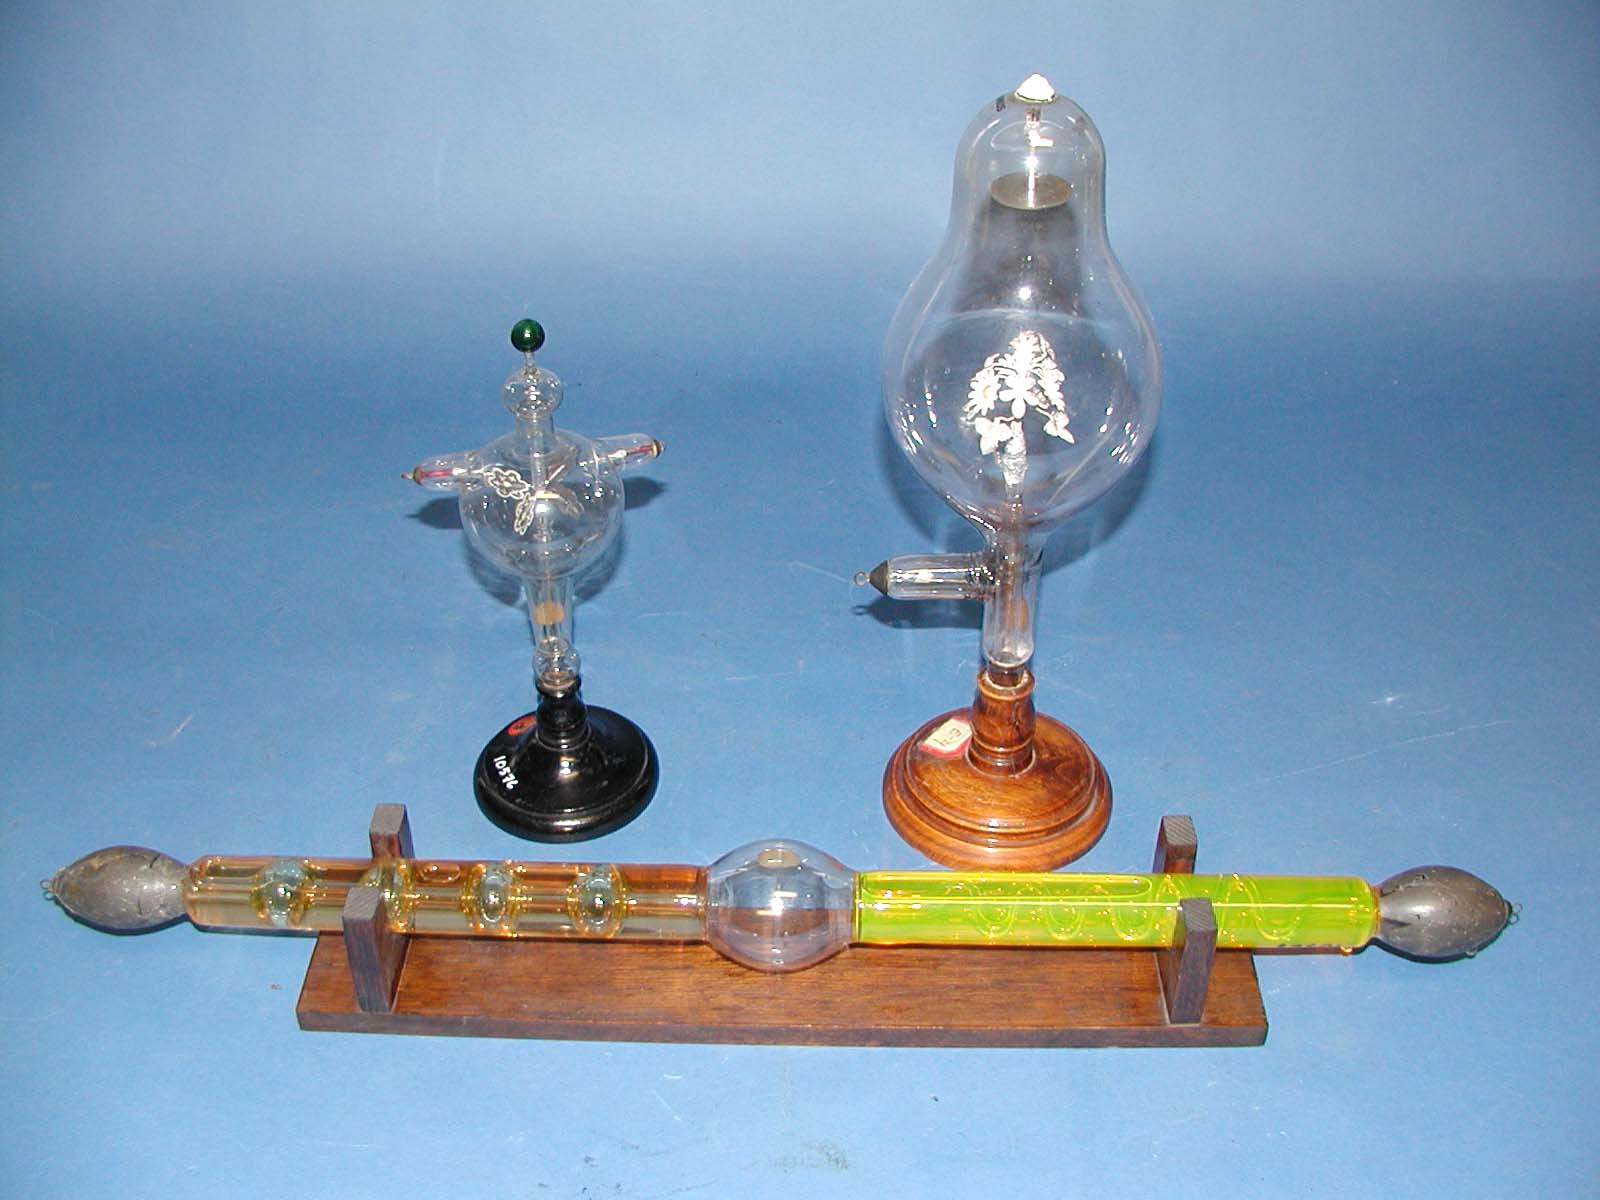 Geissler and Crookes Tubes